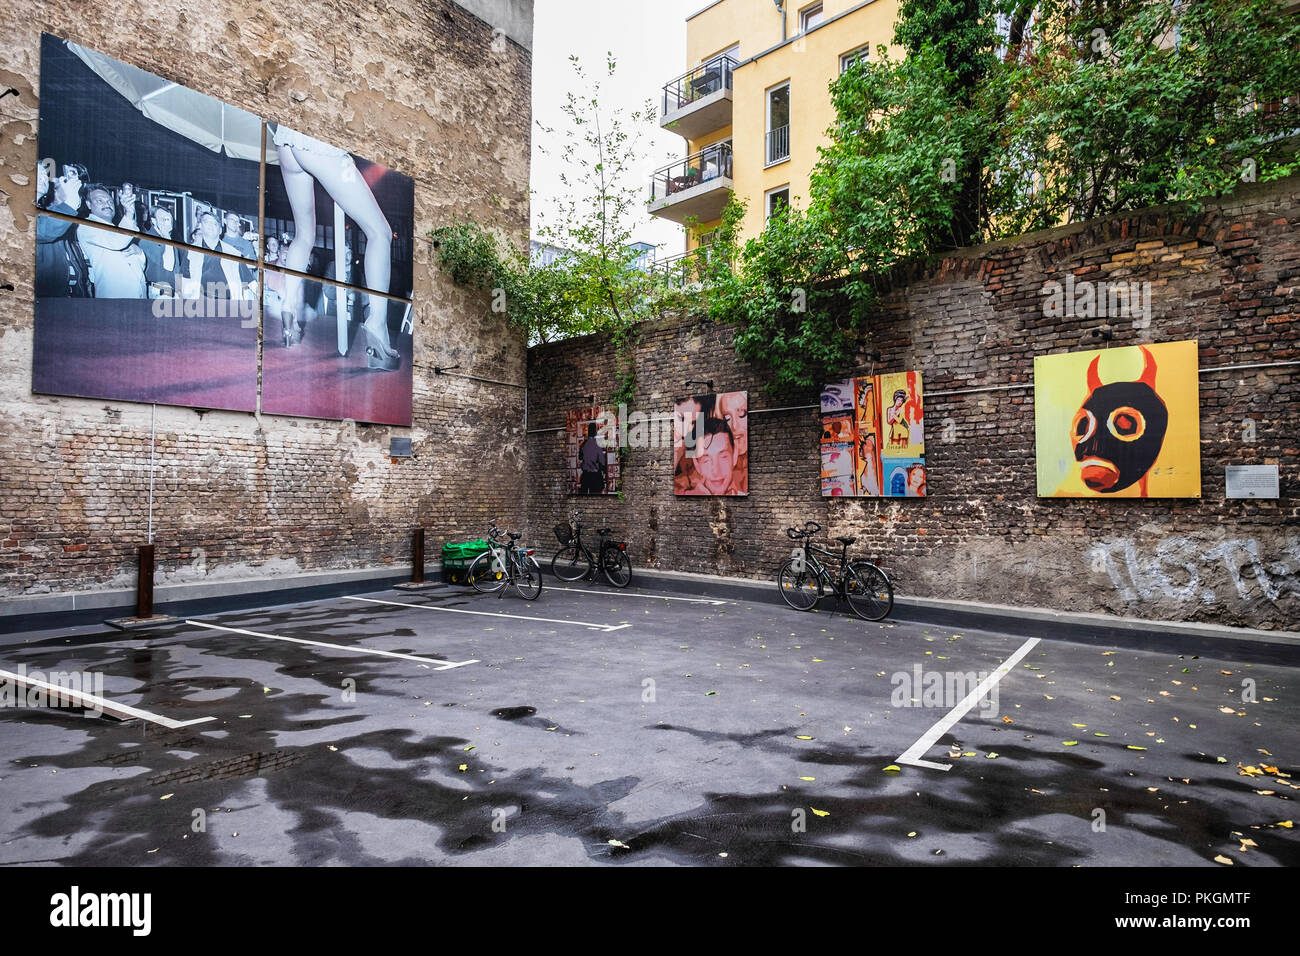 Berlin,Mitte,Torstrasse 109. Open-air gallery with exhibition of large photographic images by CAMERADOS in an inner courtyard of a building. - Stock Image